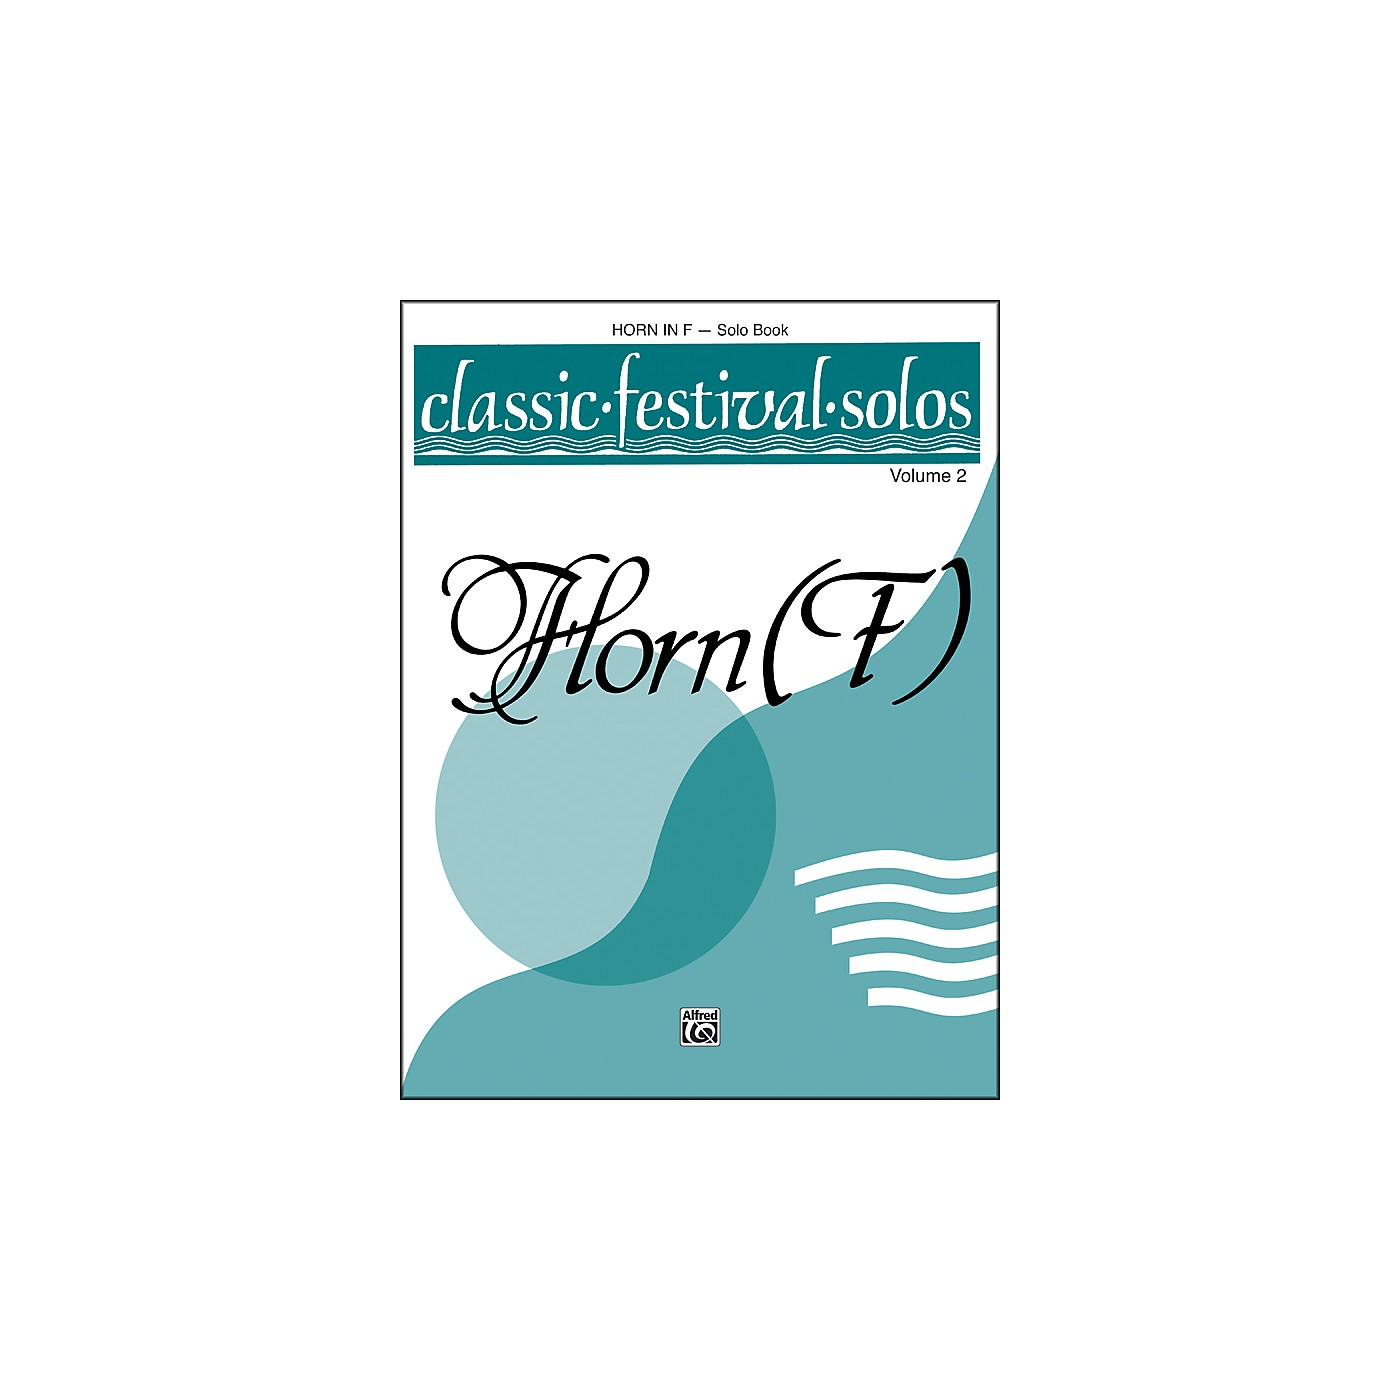 Alfred Classic Festival Solos (Horn in F) Volume 2 Solo Book thumbnail